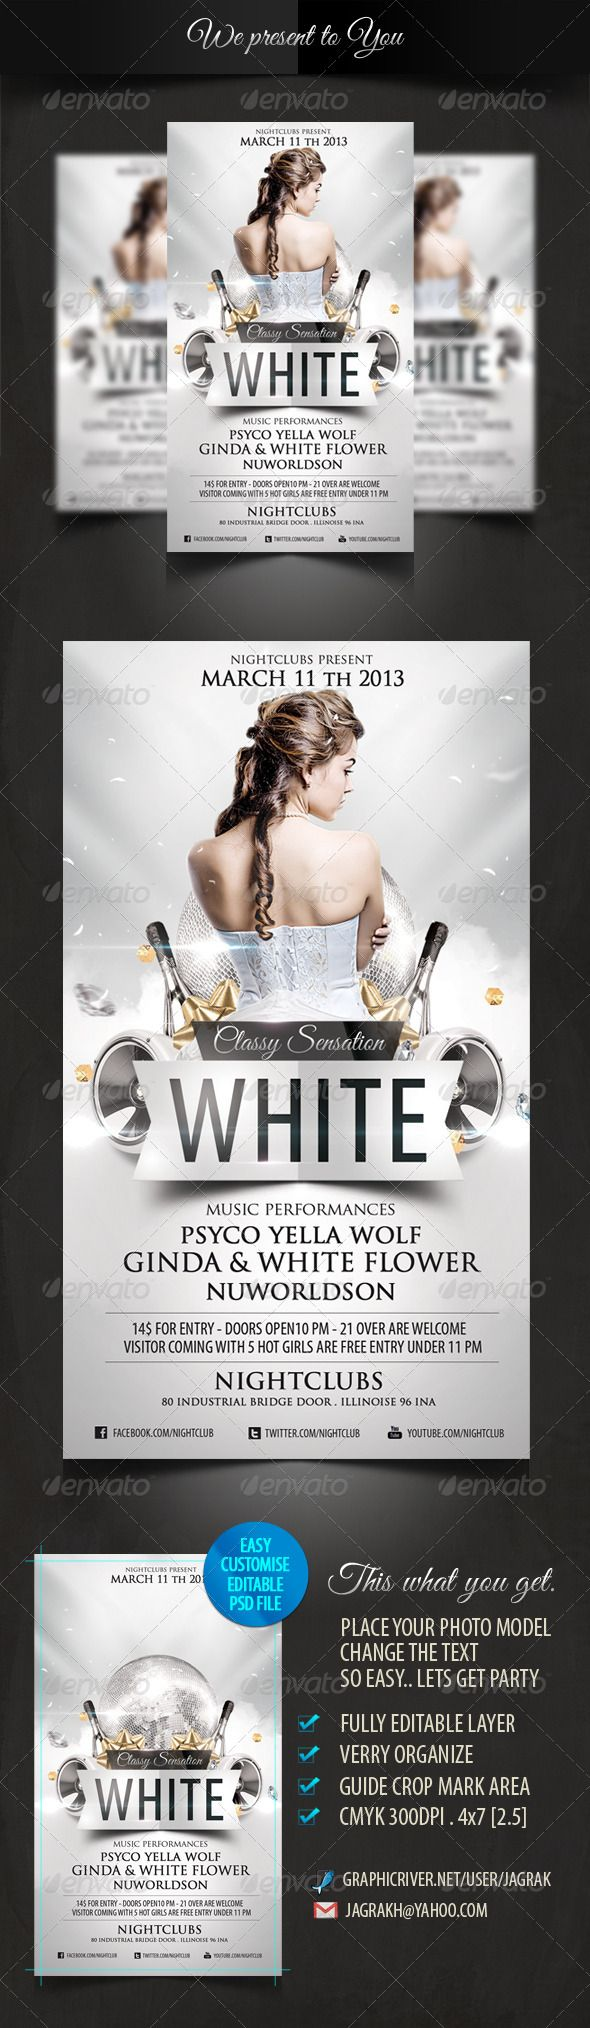 after hours party nightclub psd flyer template flyer white classy sensation party flyer template